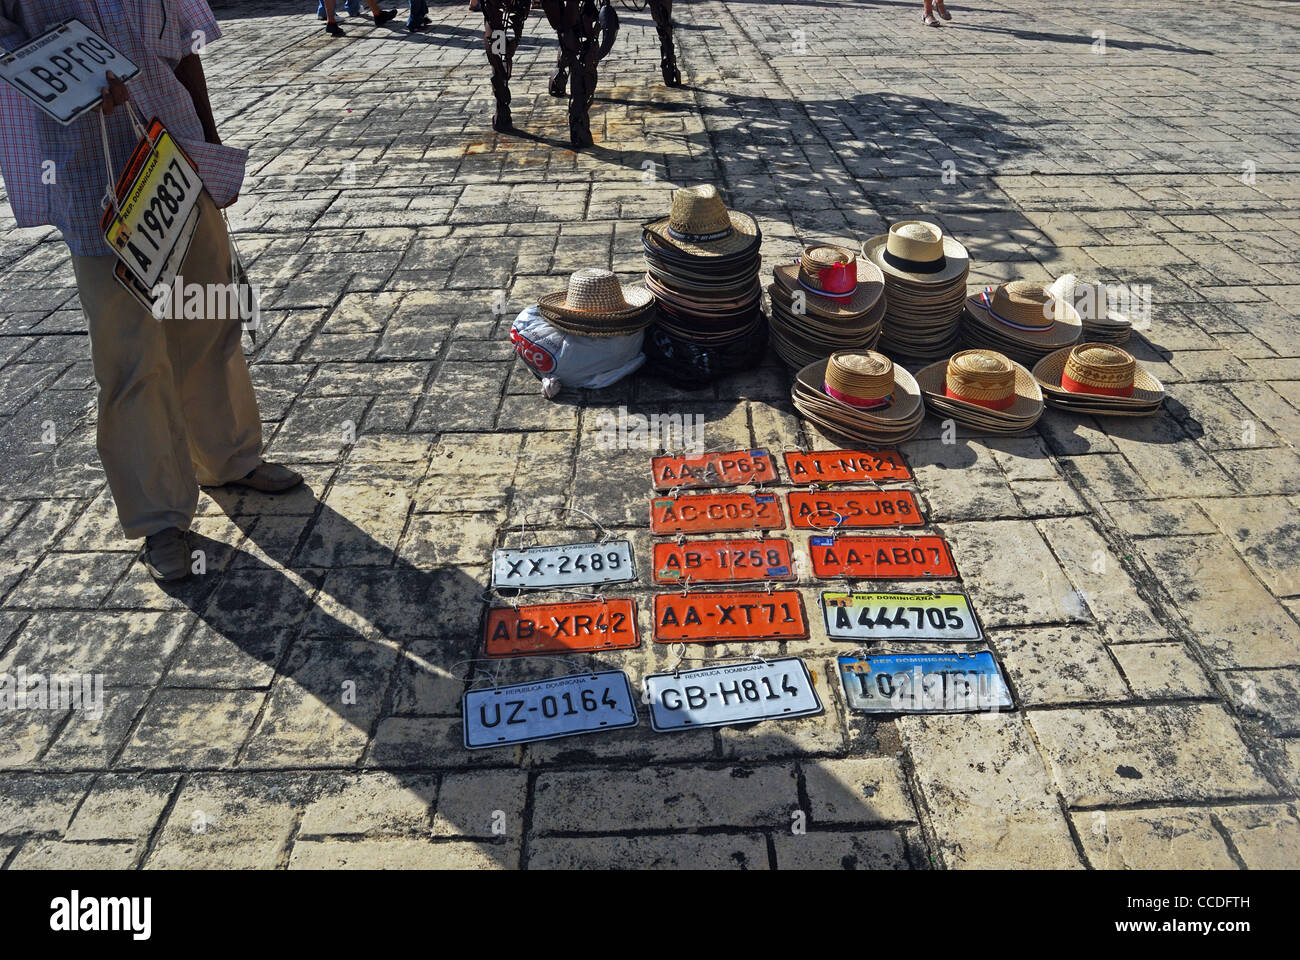 Street seller with car number plates and hats, Santo Domingo, Dominican Republic (Republica Dominicana), Caribbean, - Stock Image